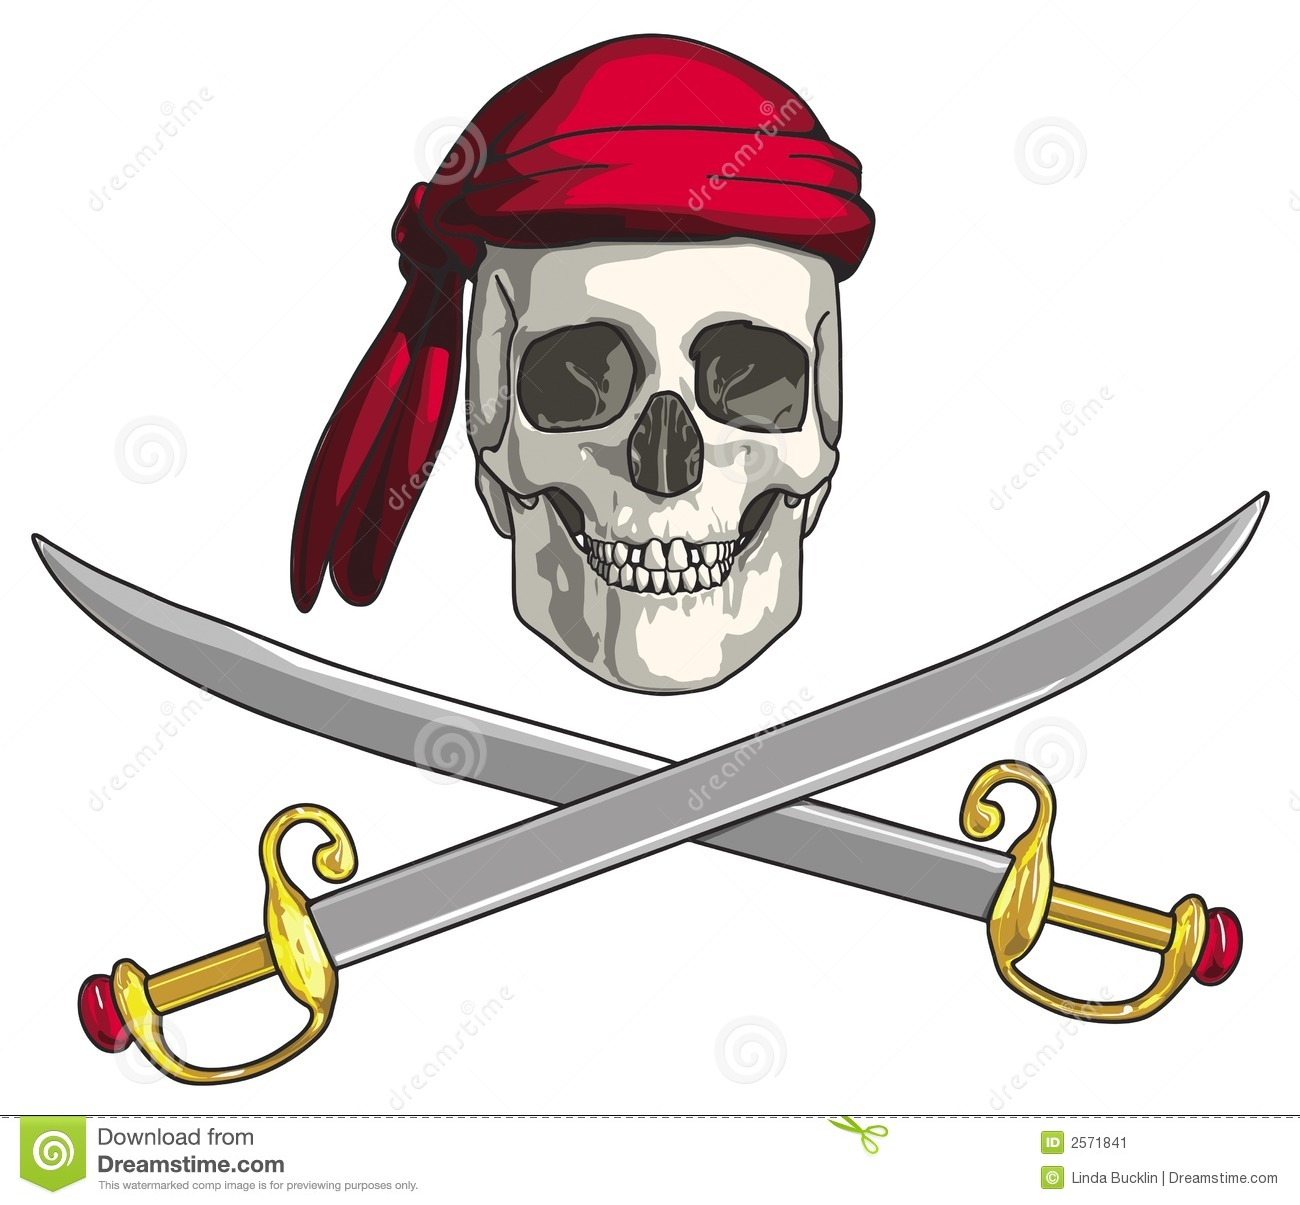 Drawing of a Pirate Skull, with crossed swords.